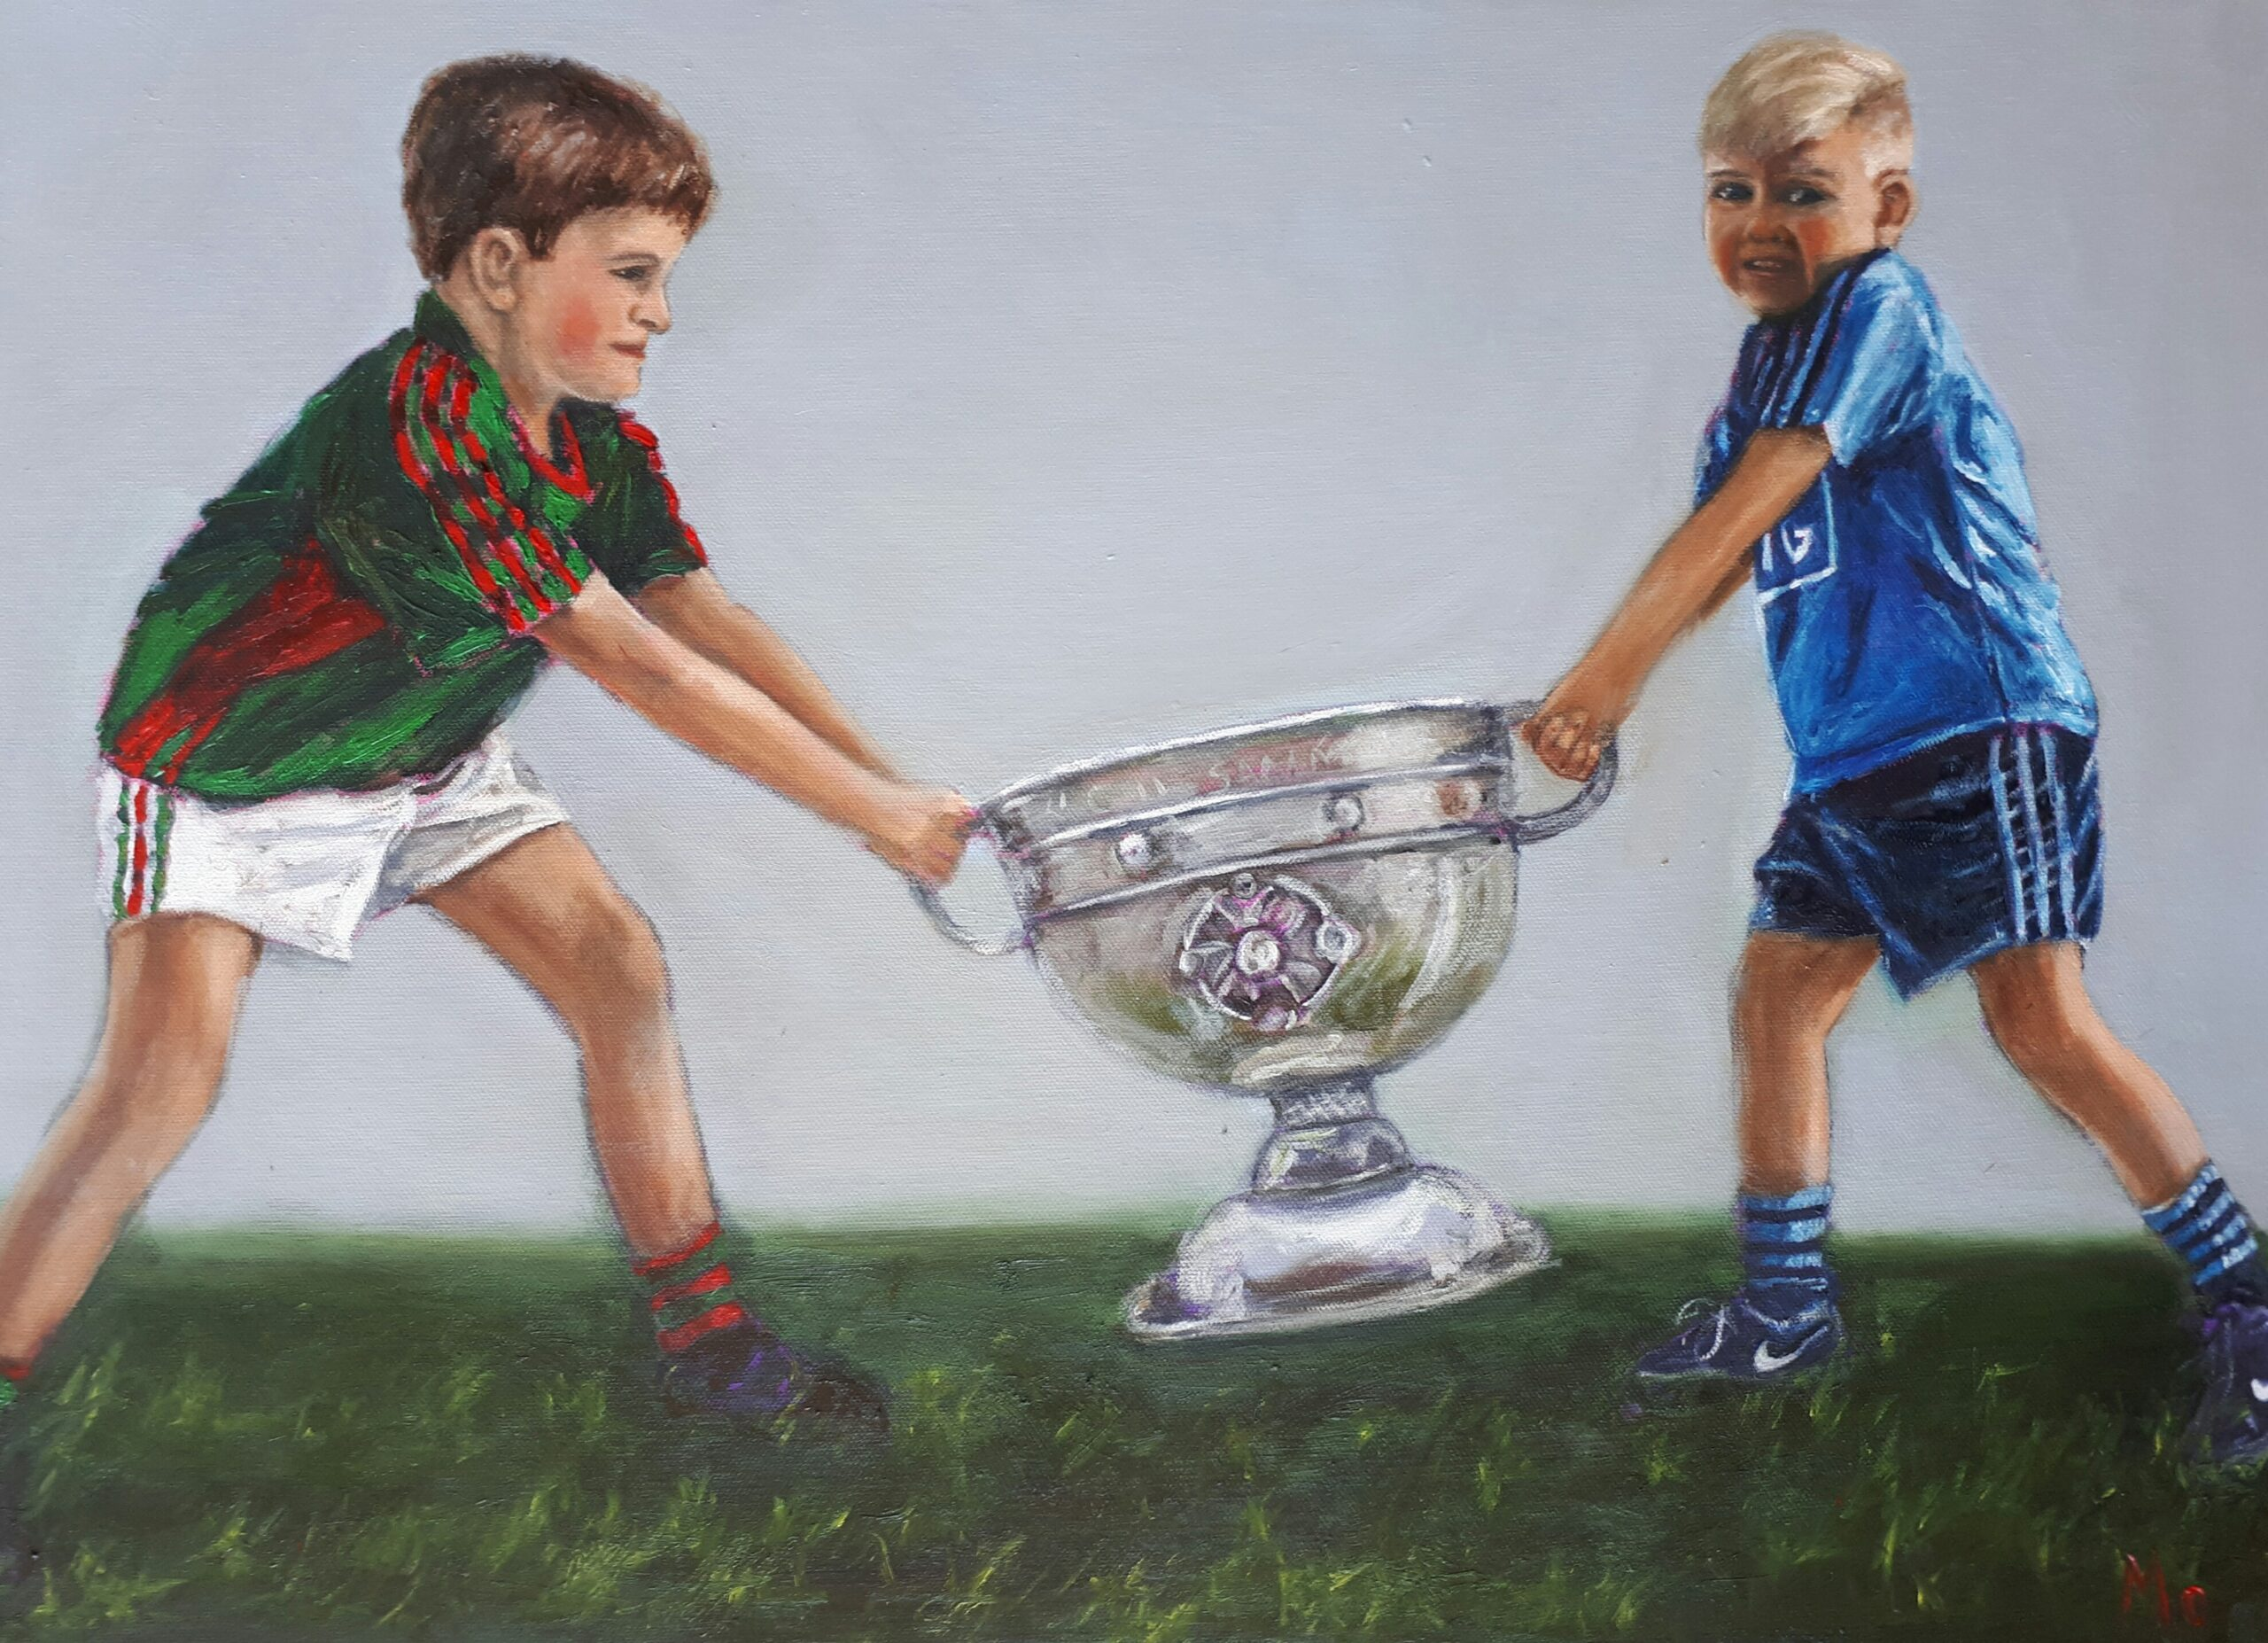 Dublin and Mayo boy fighting over the Sam Maguire